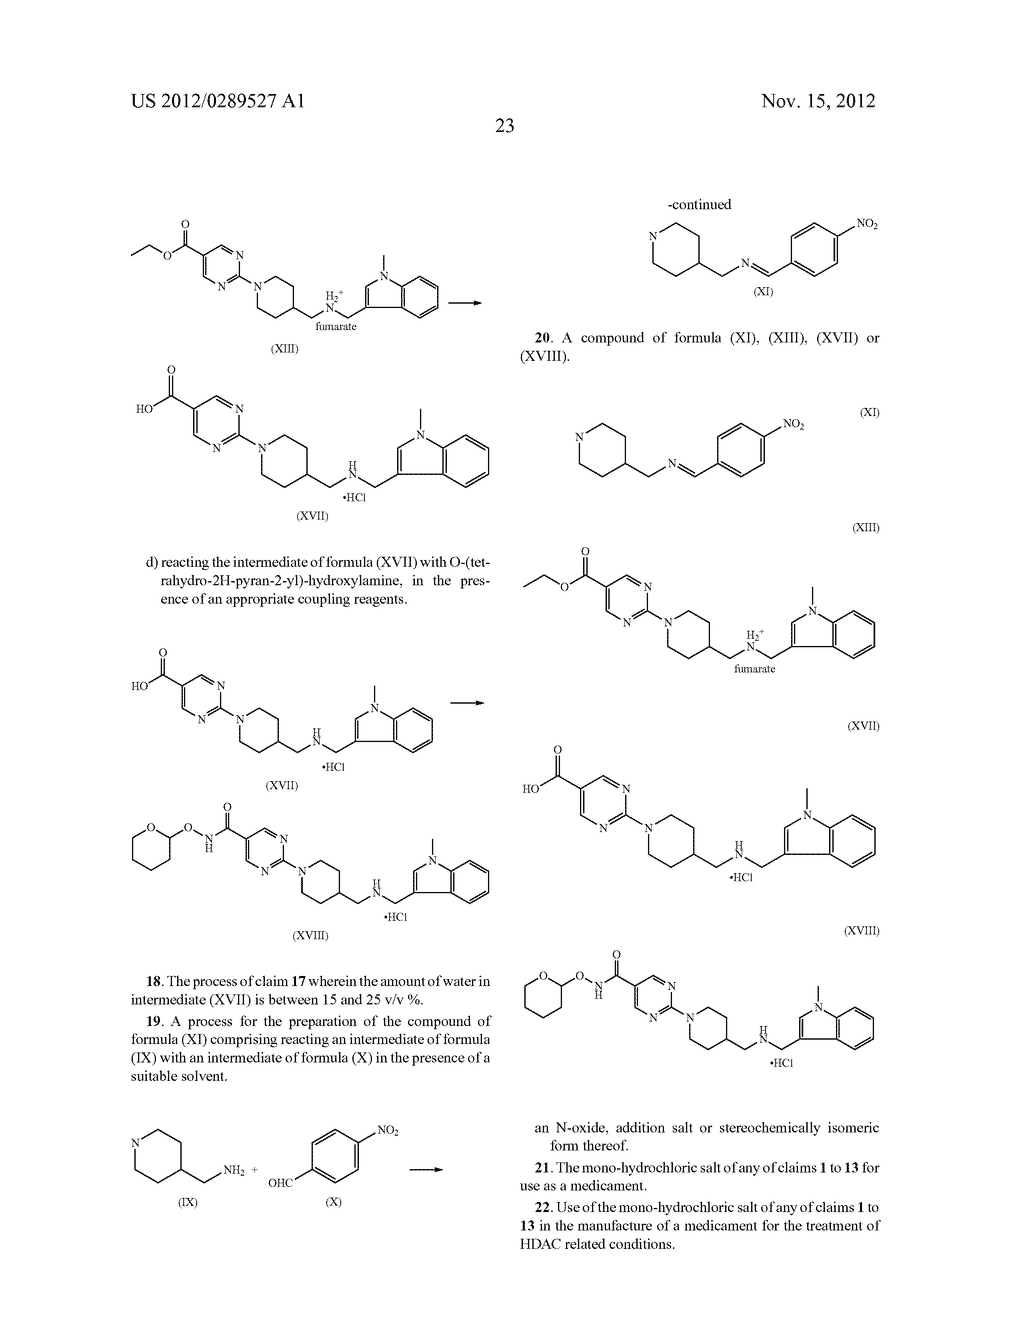 MONO-HYDROCHLORIC SALTS OF AN INHIBITOR OF HISTONE DEACETYLASE - diagram, schematic, and image 40